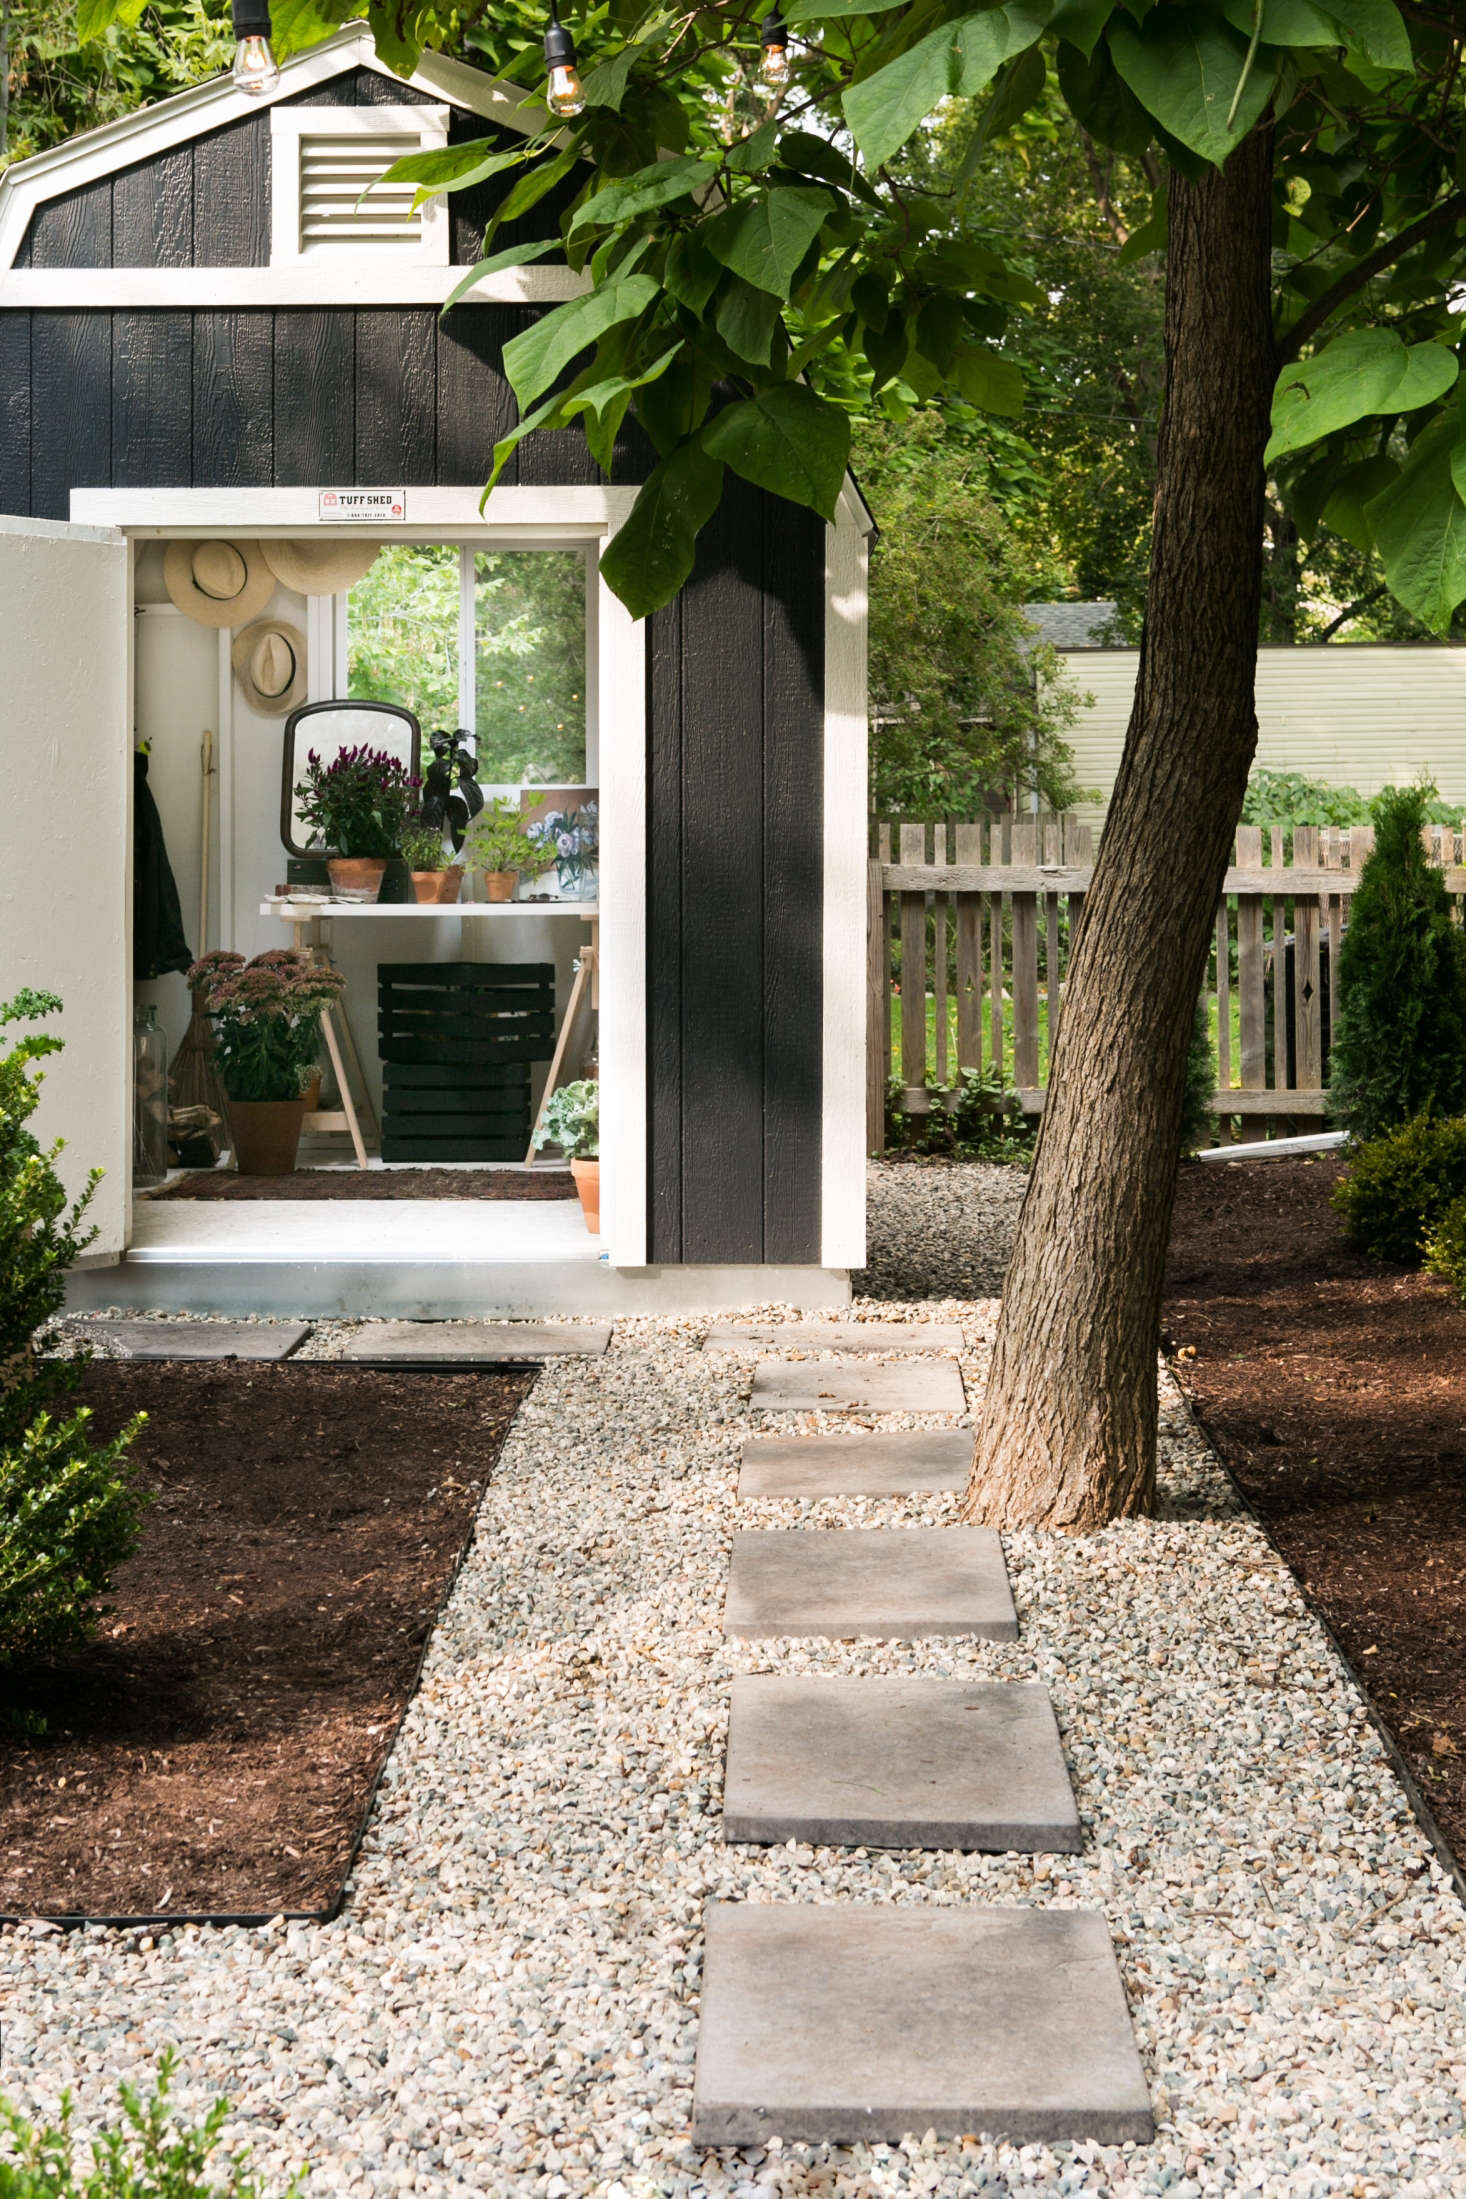 A shed tucked into the back corner of the garden is linked visually with a path of pavers set in gravel. Adams installed a customizedTuff Shed from Home Depot, matching the facade color to the exterior paint on her house.